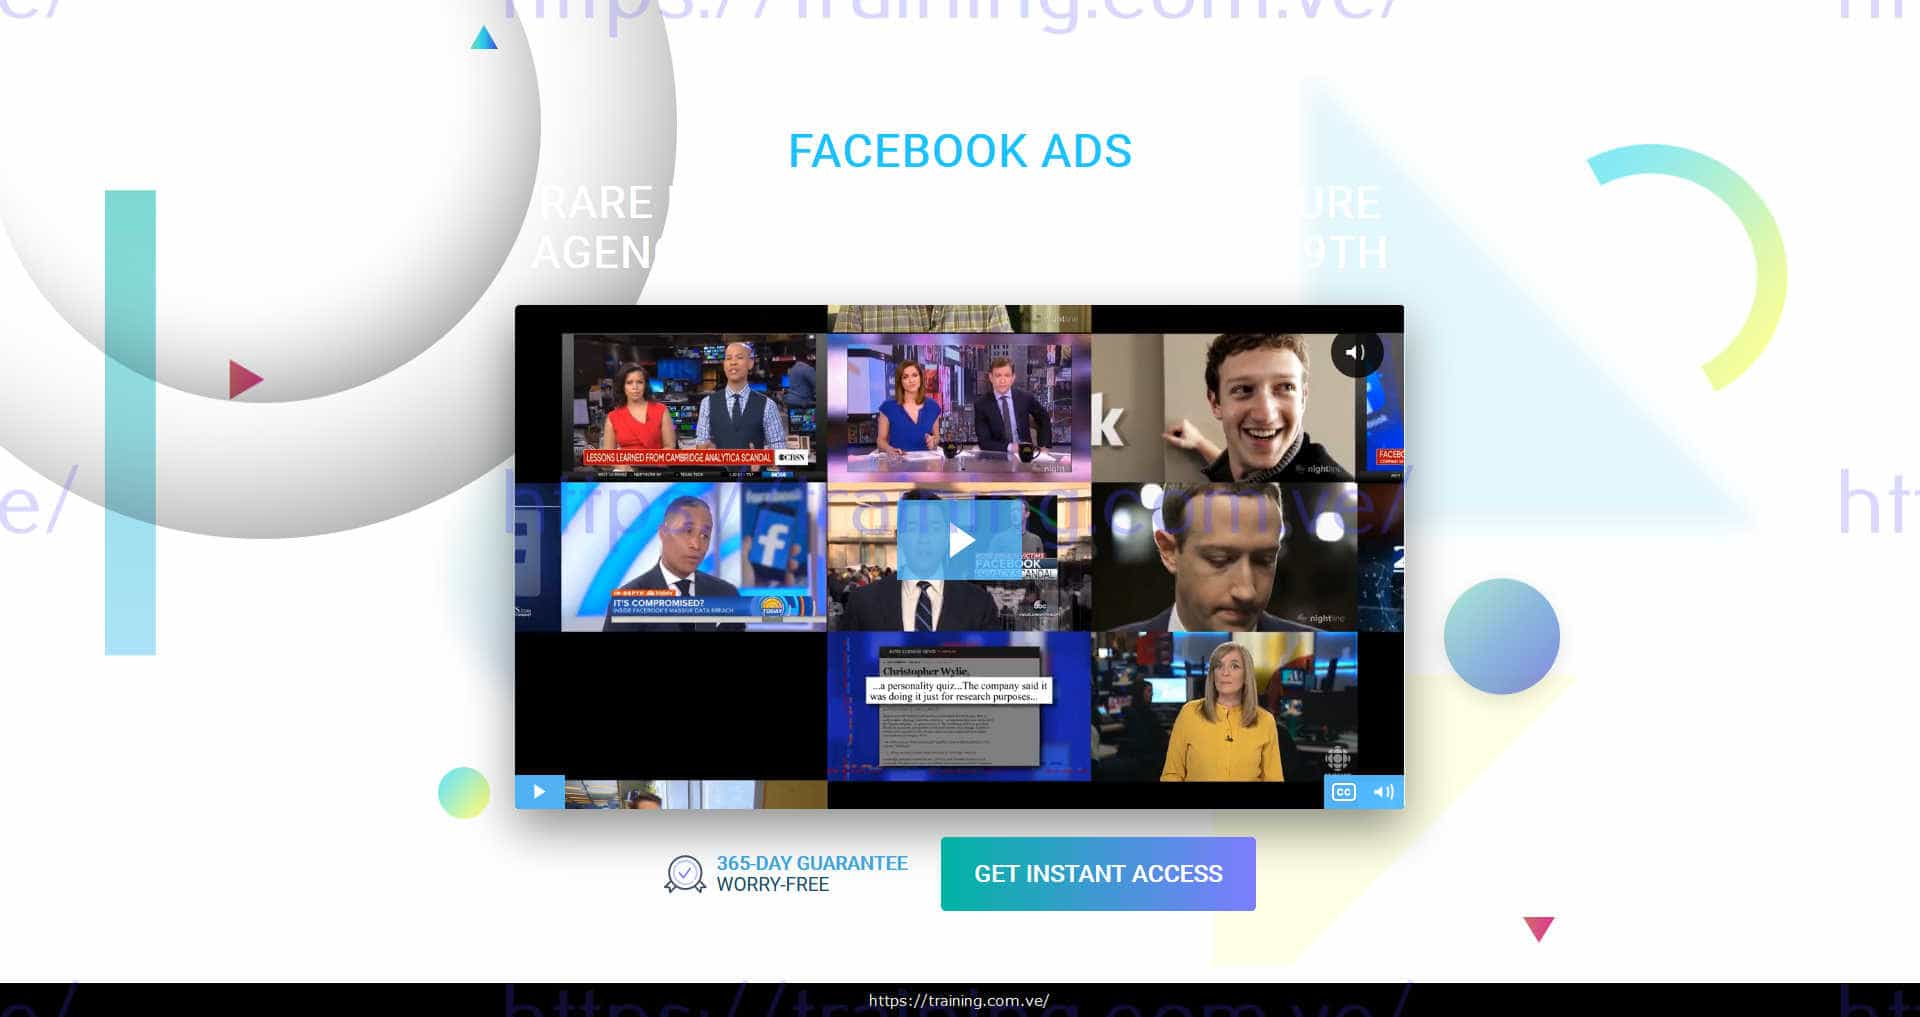 Facebook advertising agency by Jumpcut Buy